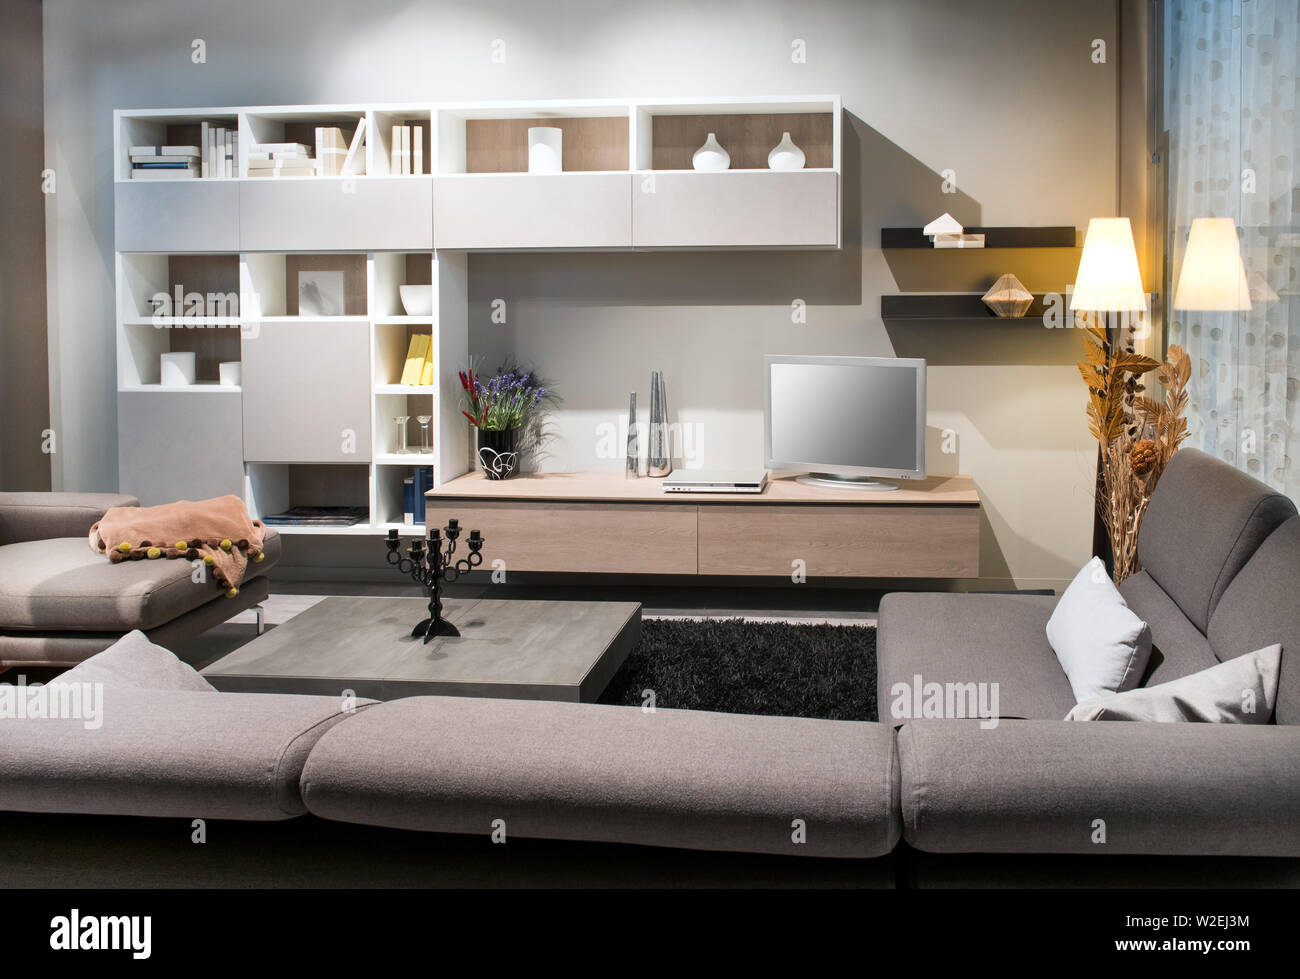 Modern living room interior with comfortable upholstered brown sofas facing a display cabinet and television illuminated by down lights and a lamp Stock Photo